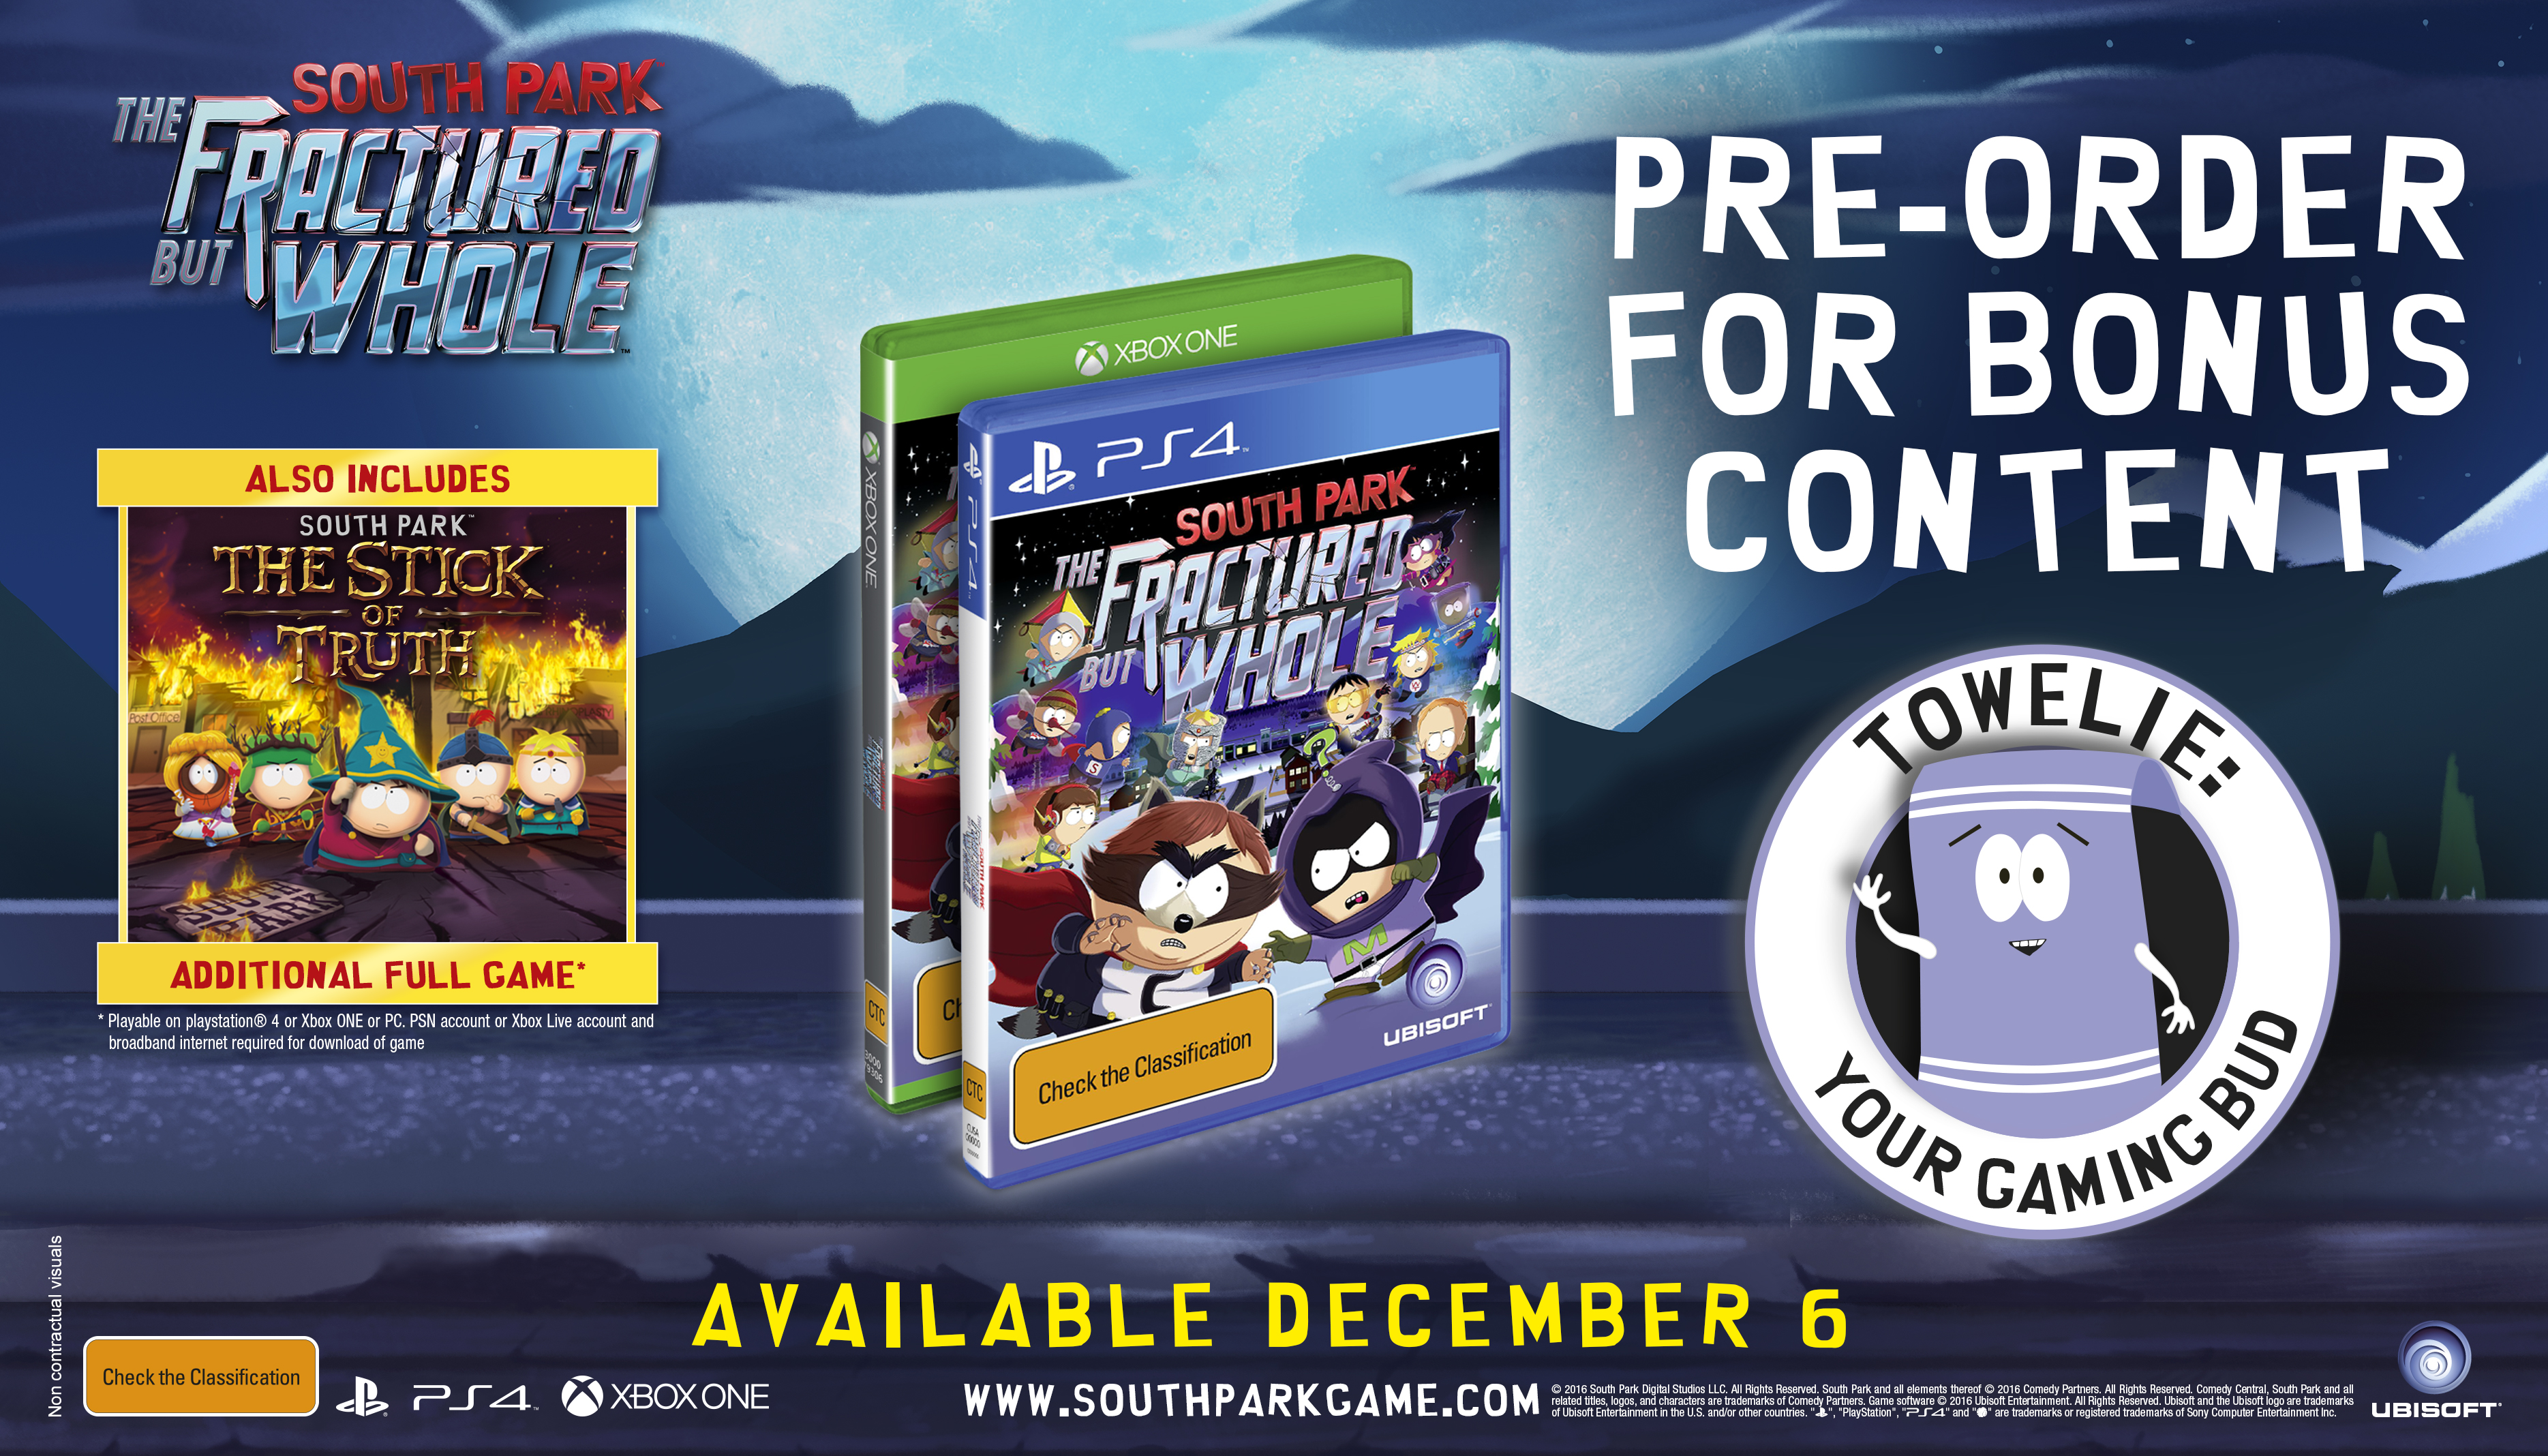 SPFBW mock preorder e3 160613 230pm ANZ 1465857023 E3 2016: South Park: The Fractured But Whole Dated